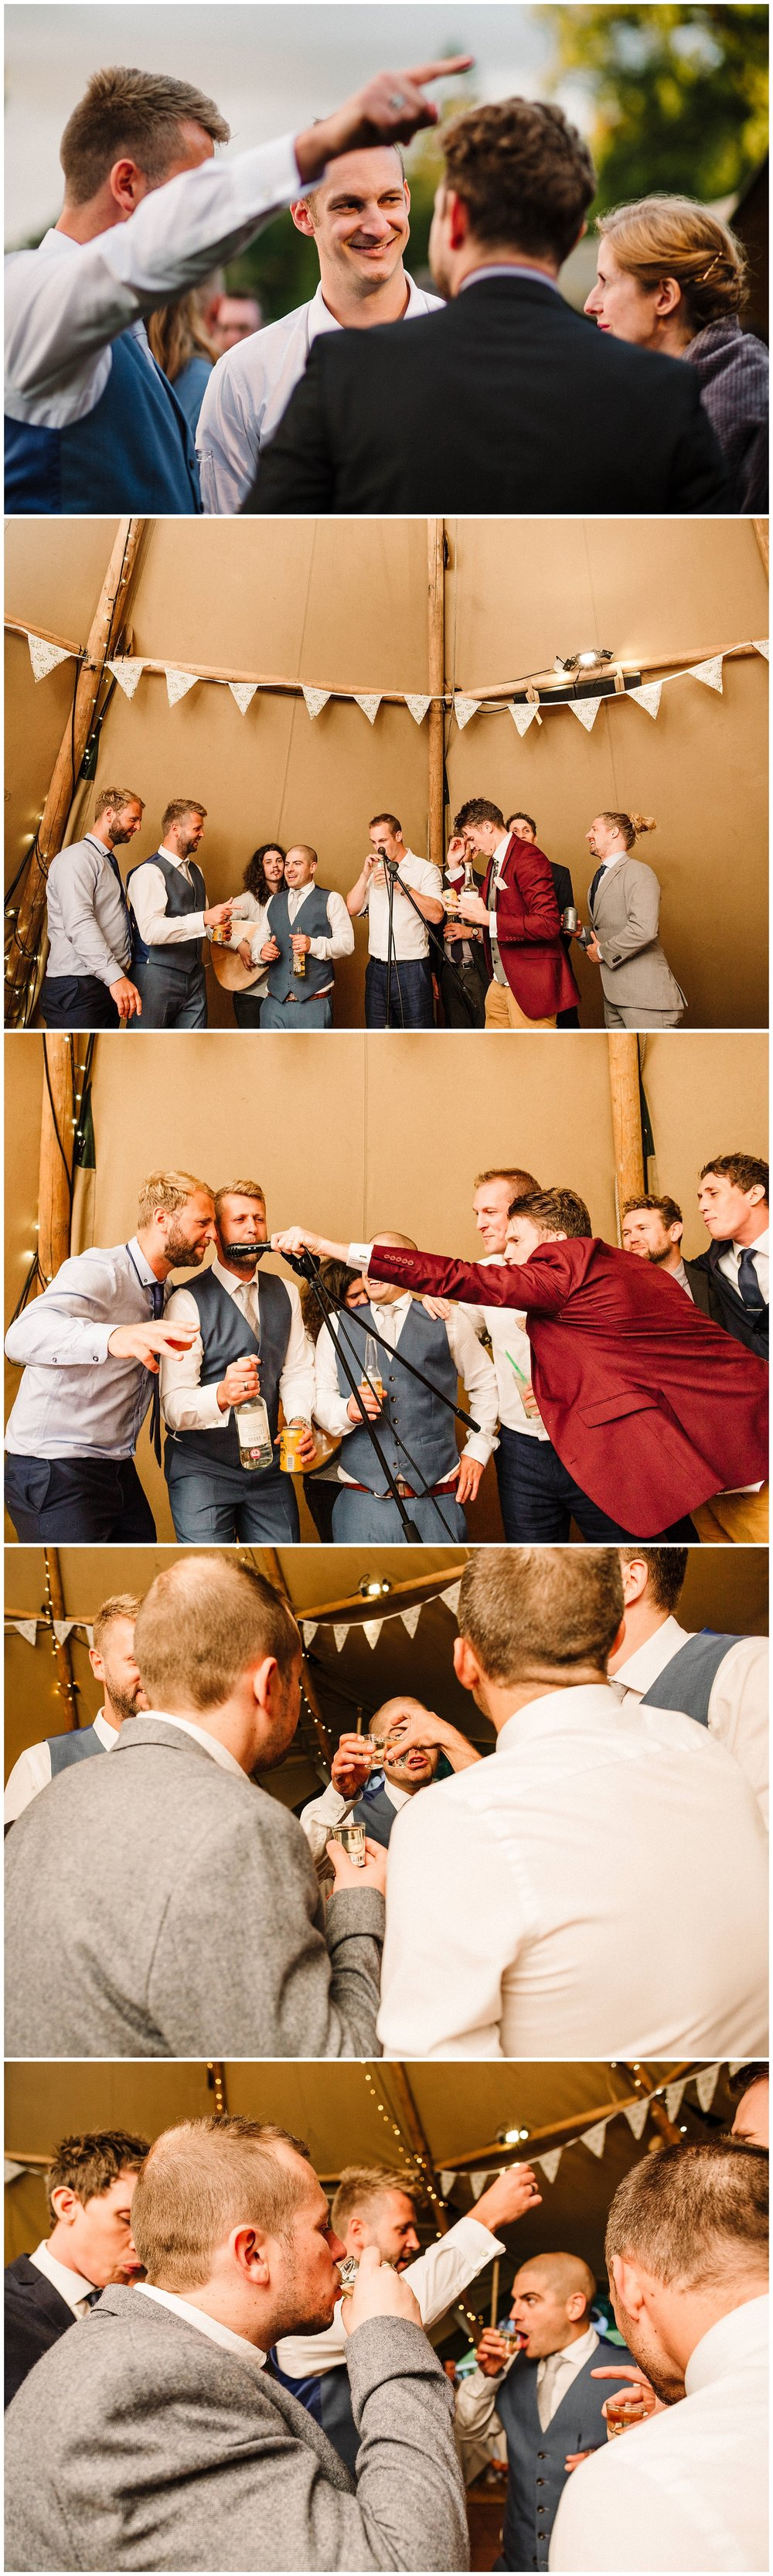 male wedding guests singing karaoke on stage and drinking at a yorkshire wedding